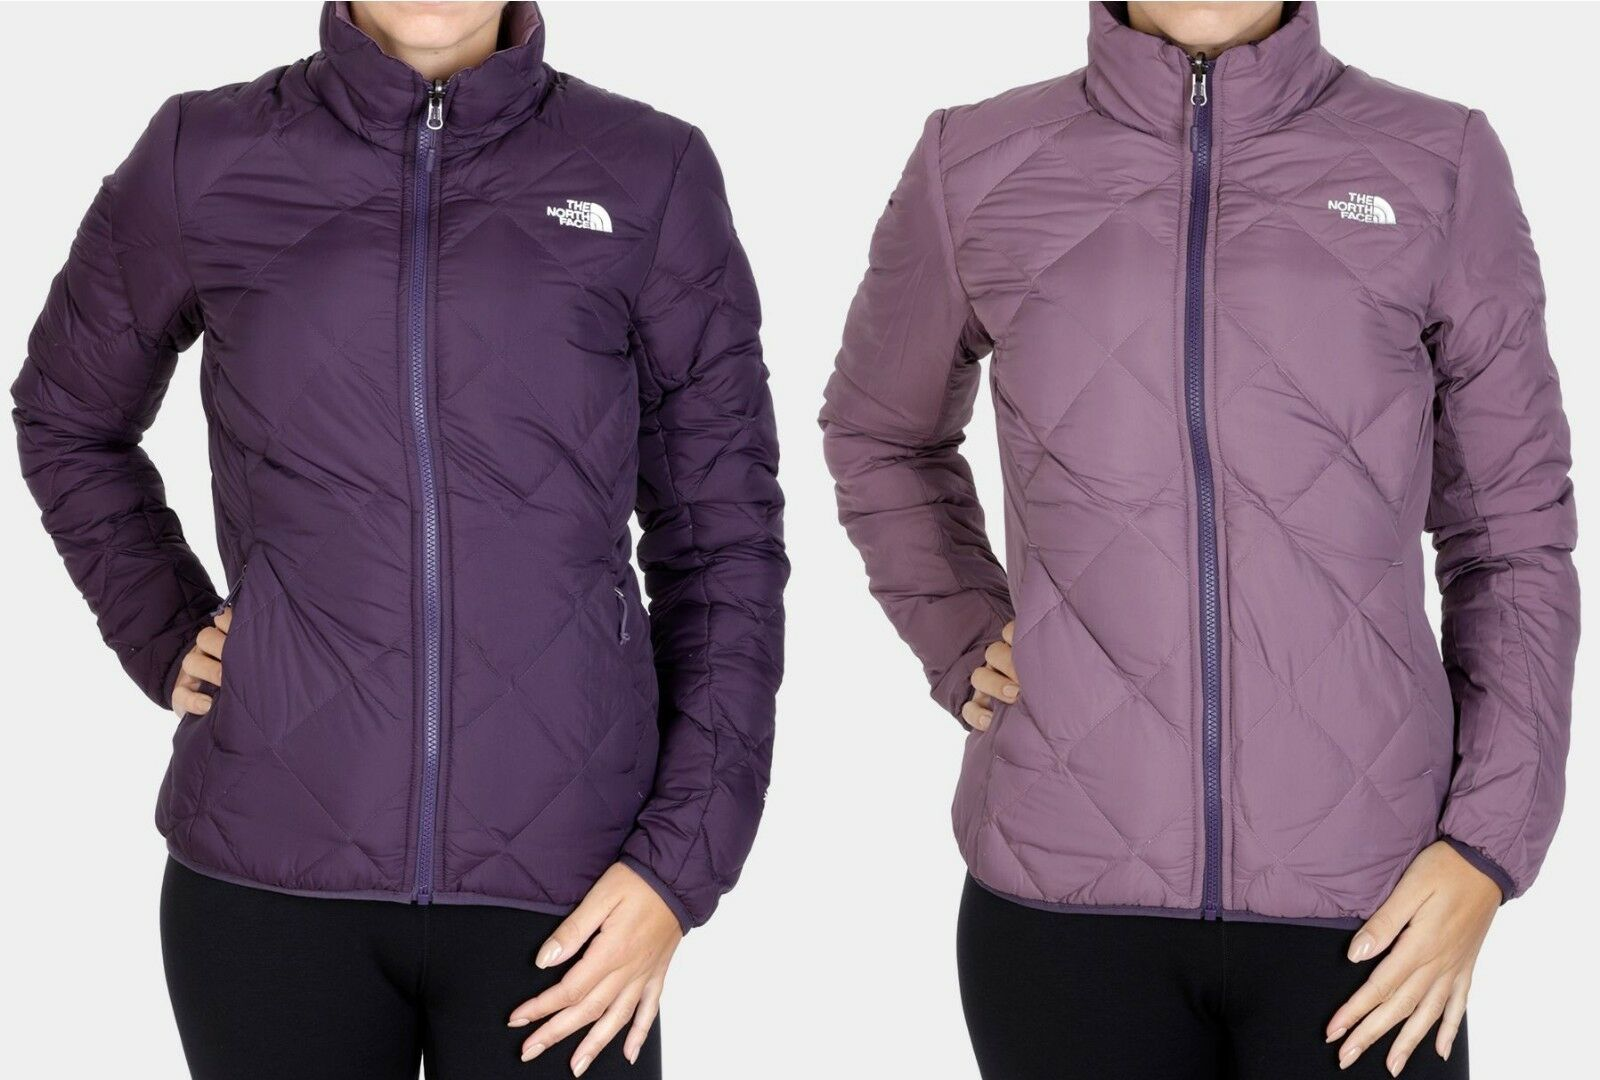 THE NORTH FACE PEAKFRONTIER REVERSIBLE - 700 DOWN insulated damen COAT - M